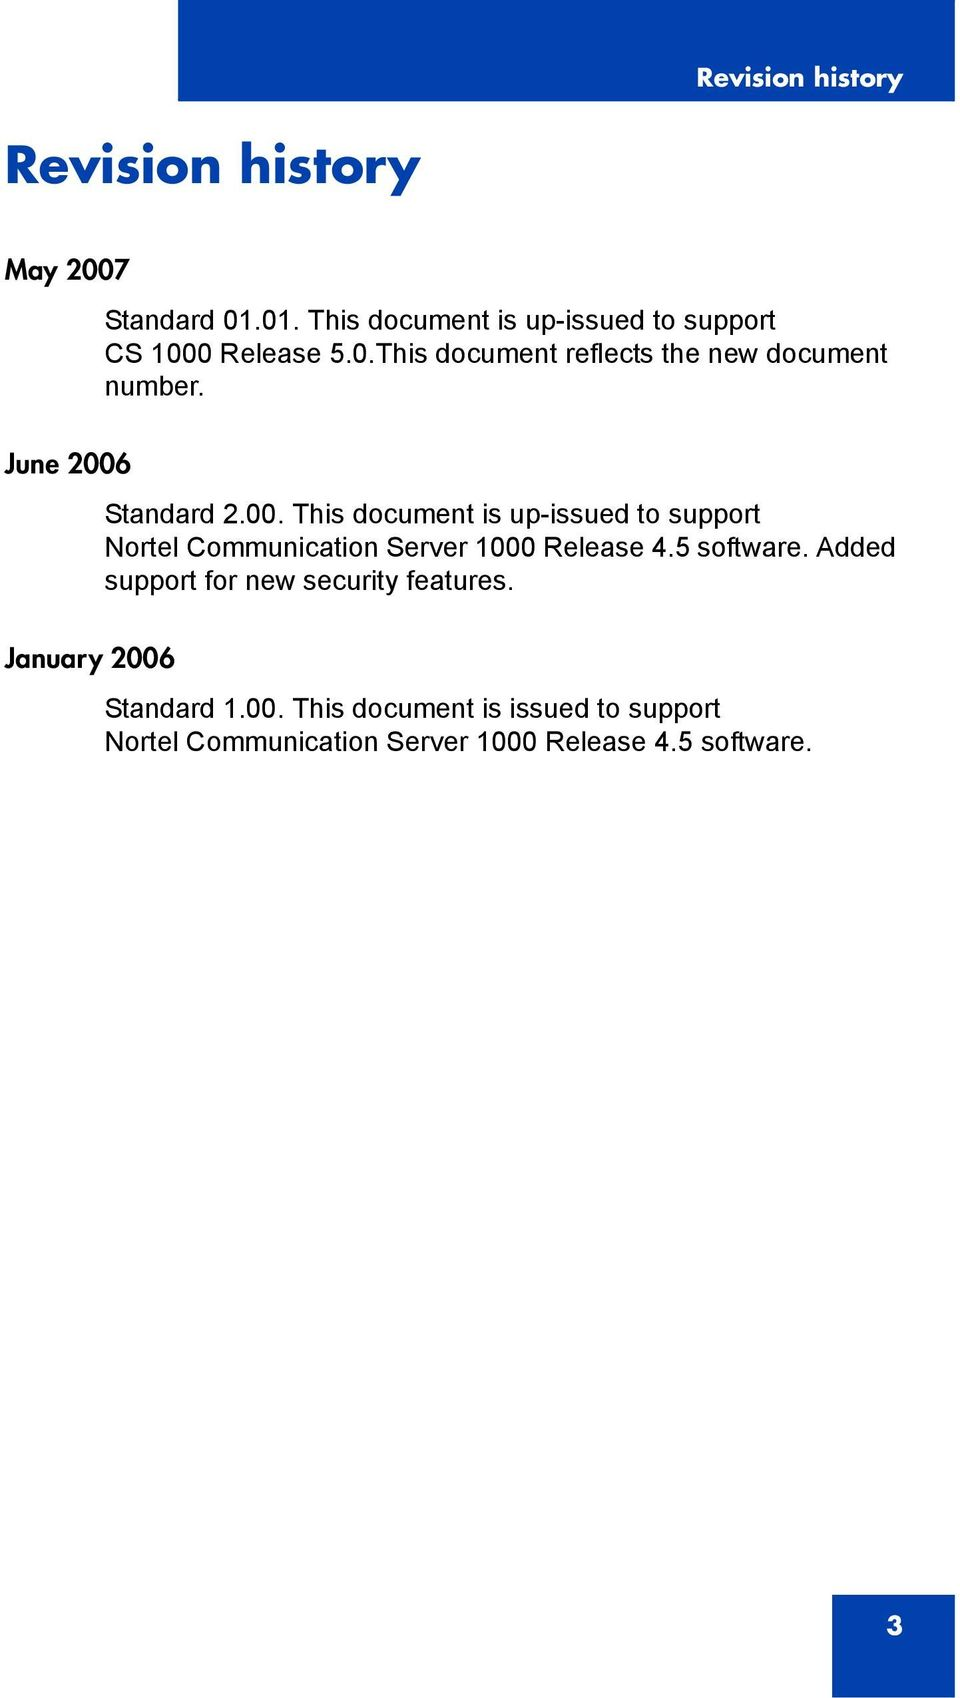 June 2006 Standard 2.00. This document is up-issued to support Nortel Communication Server 1000 Release 4.